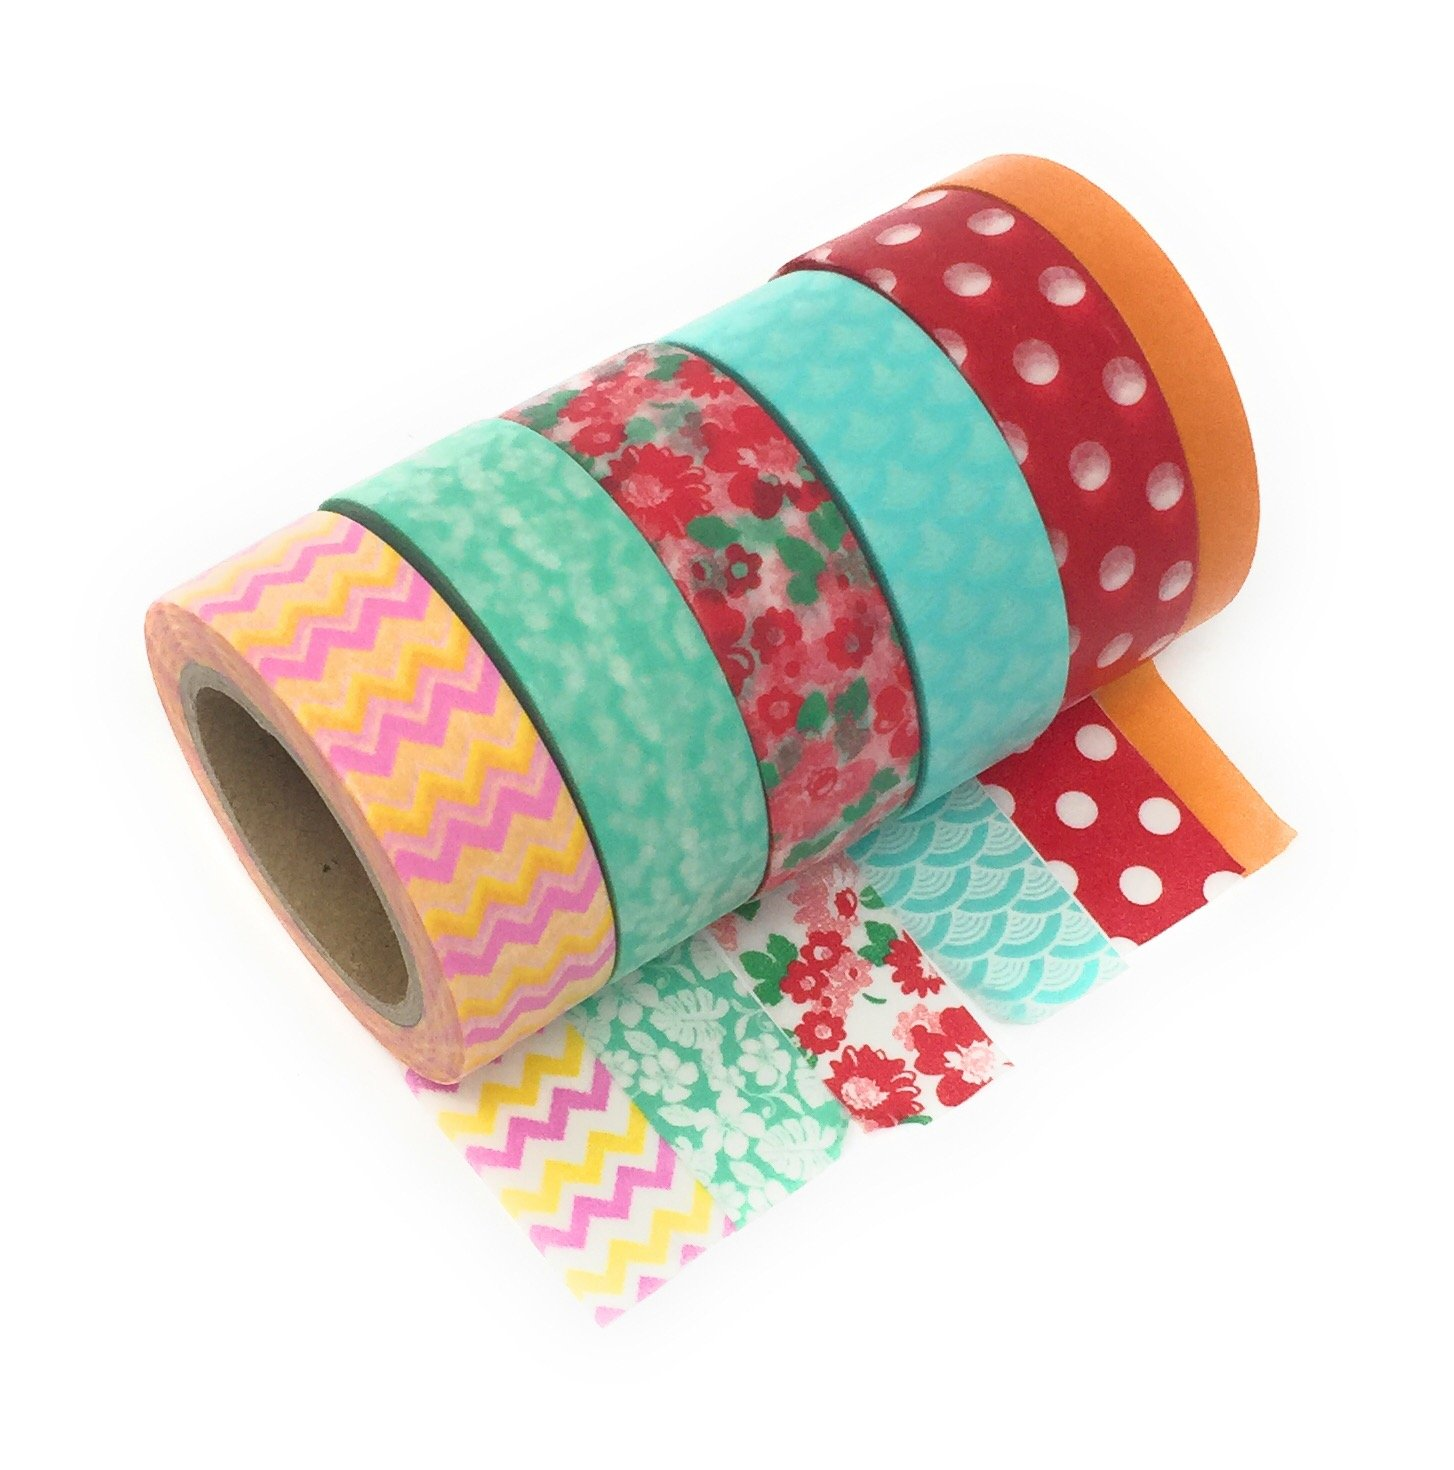 Washi Tape Washi Tape 101 Ideas For Paper Crafts Book Arts Fashion